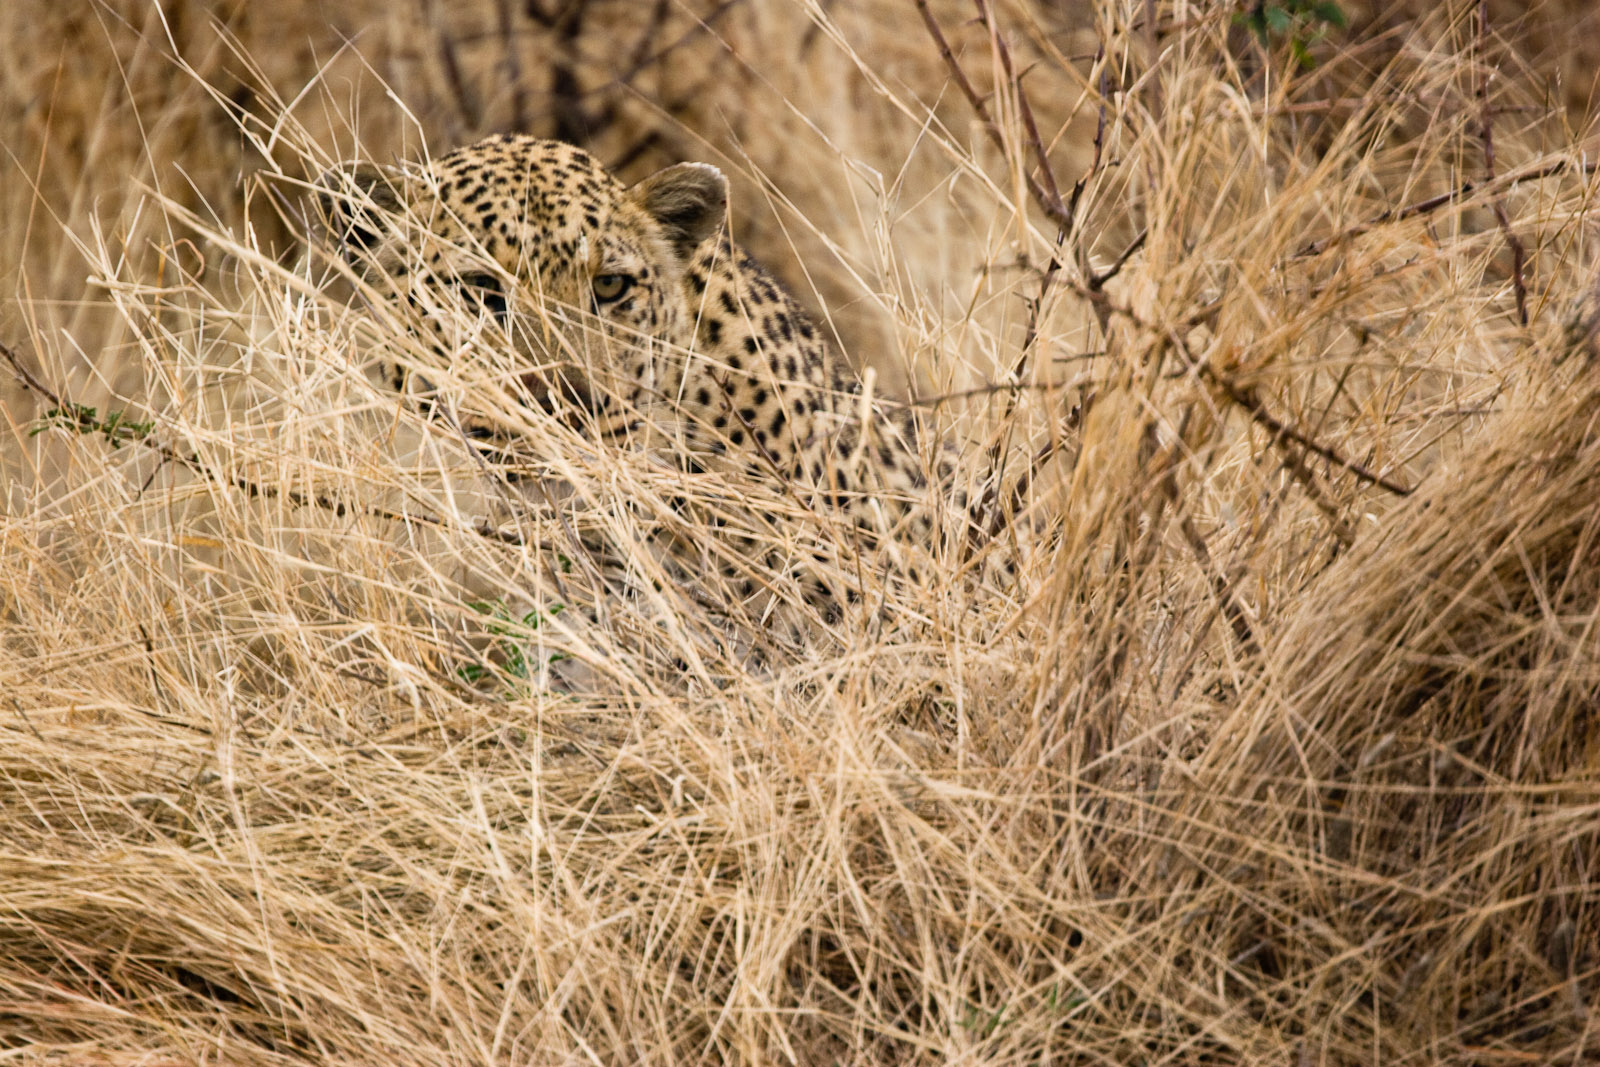 A stalking leopard in stealth mode.